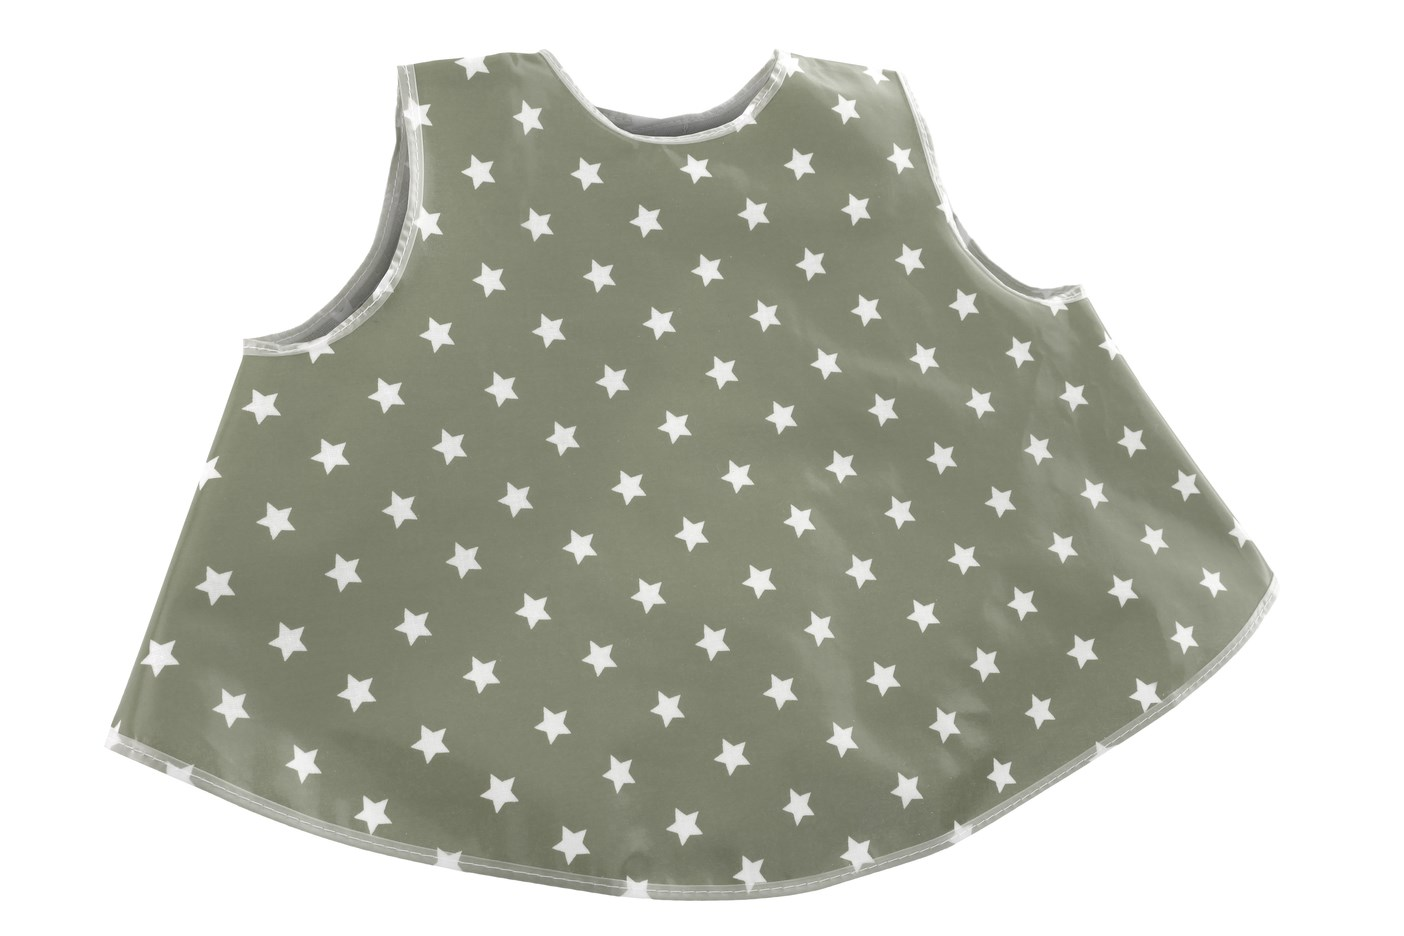 Wipe Clean Tunic Style Bib - Stylish Grey Stars